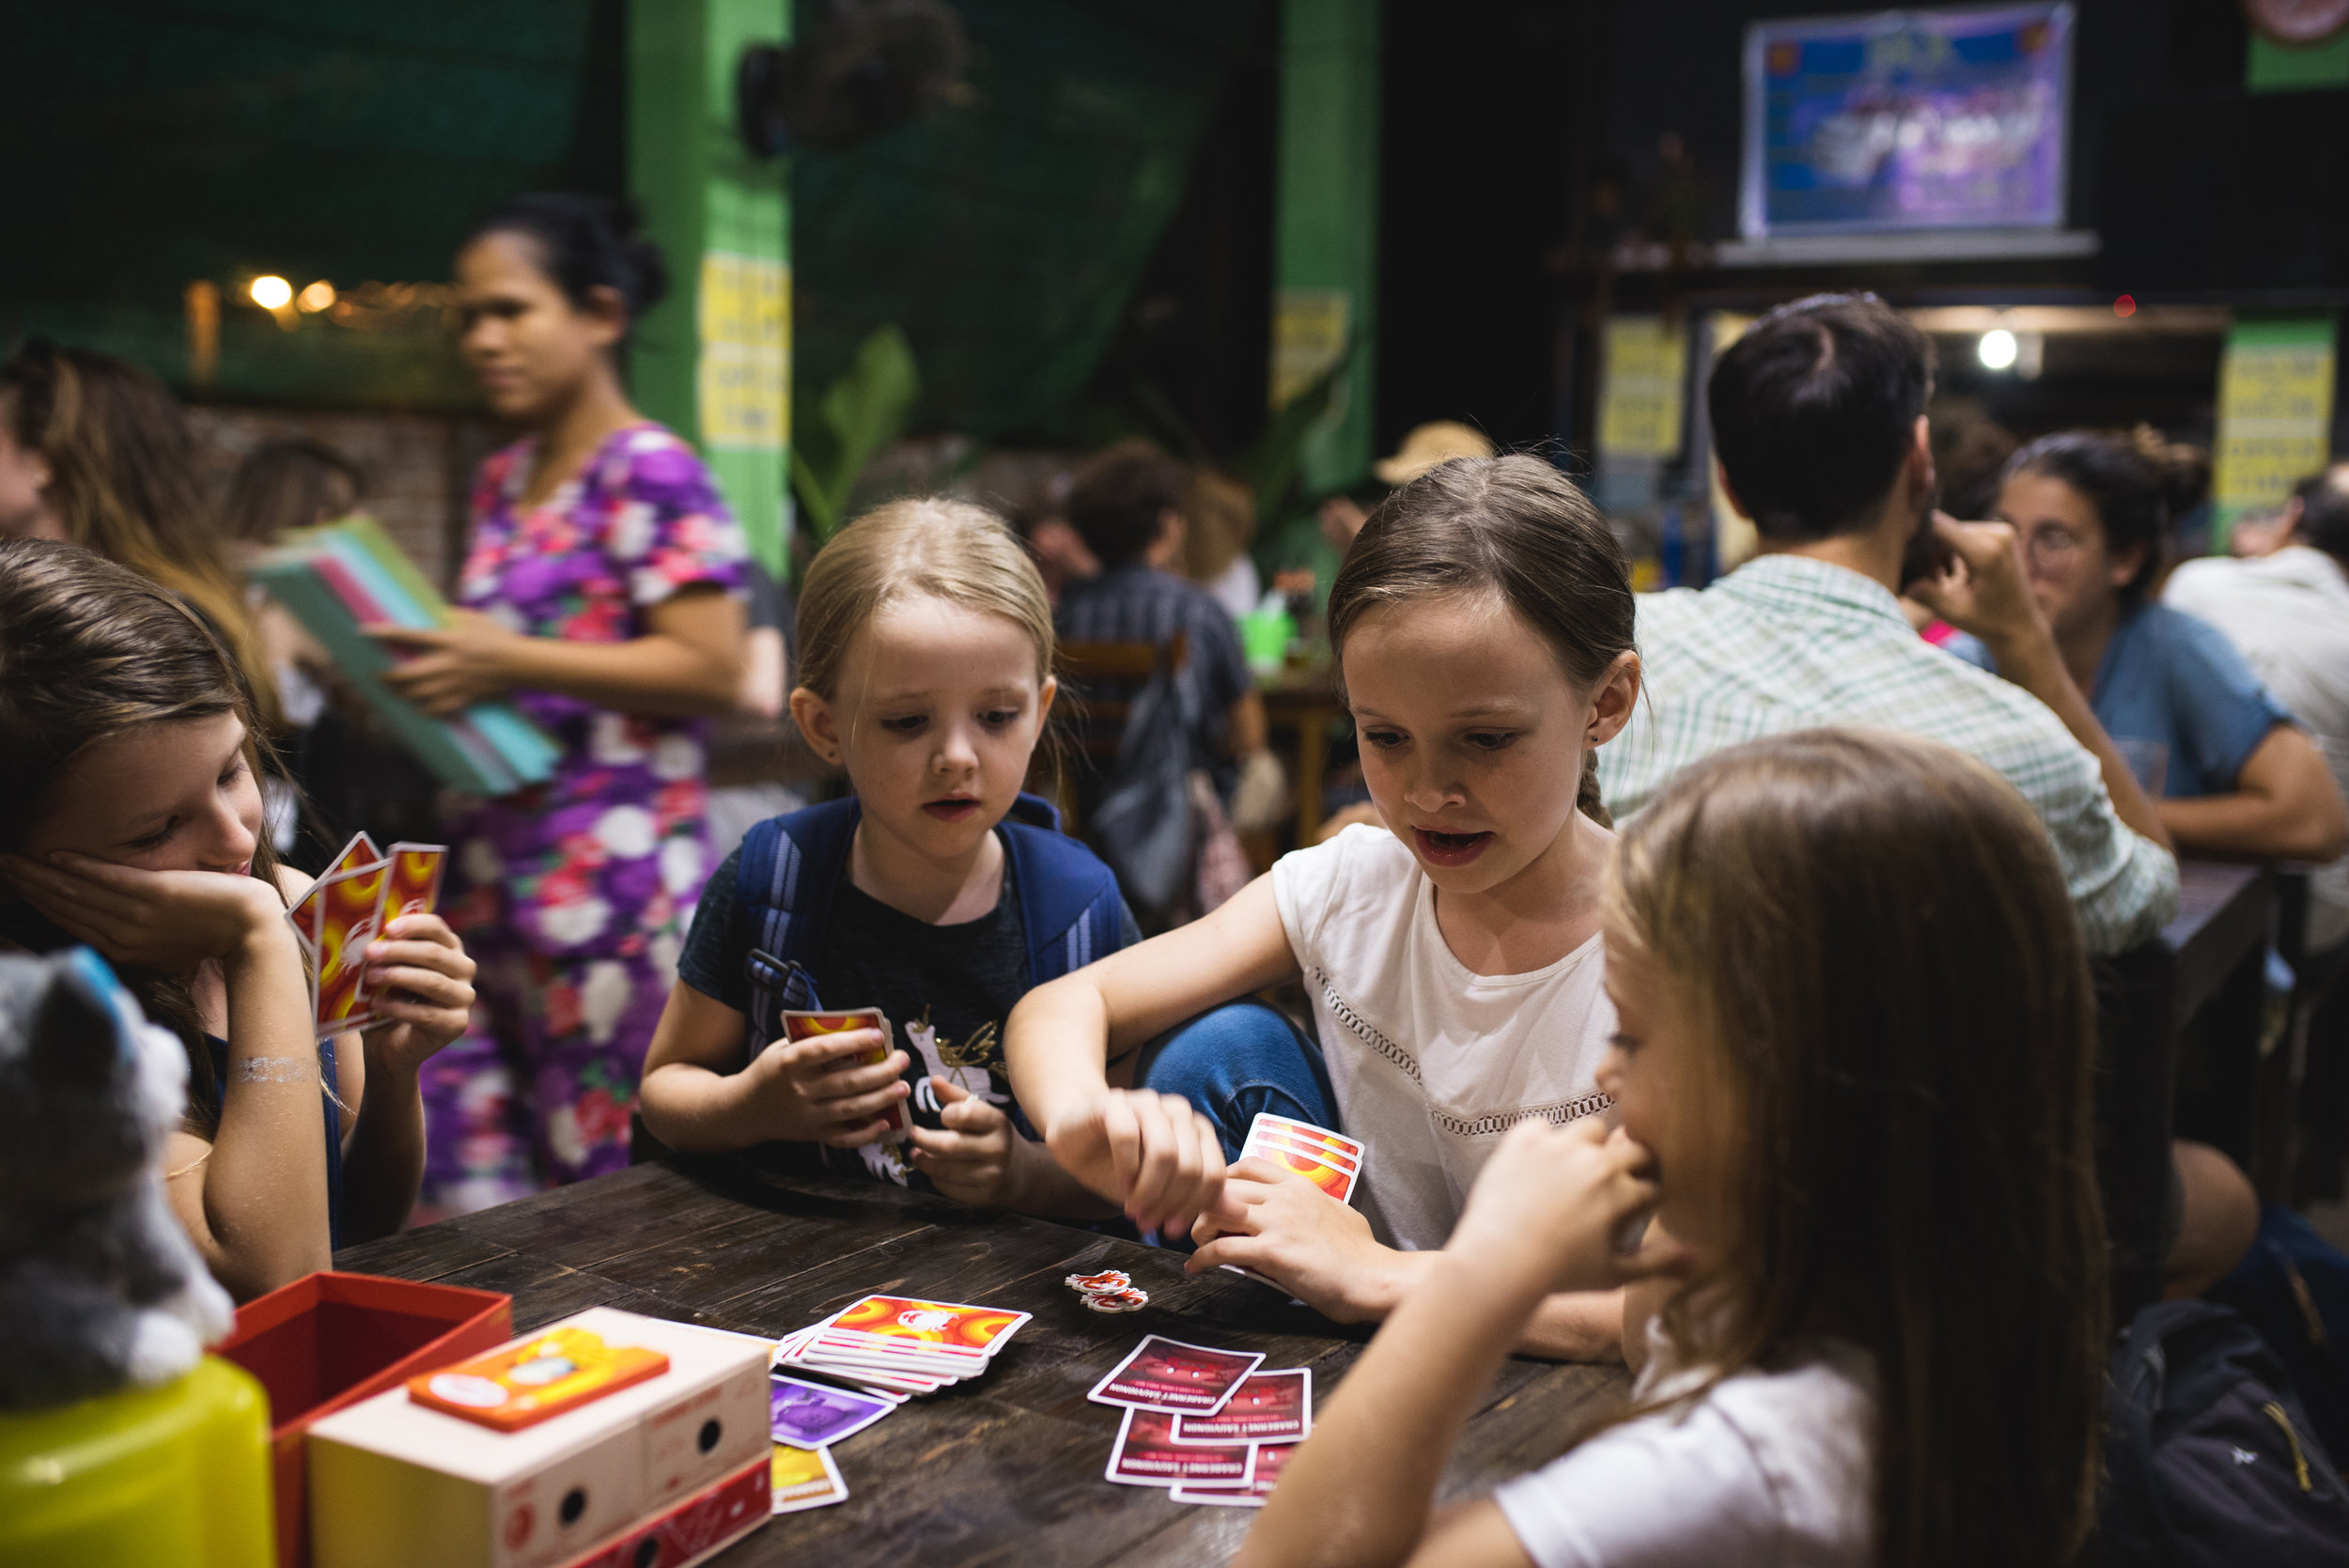 The kids playing cards at a local restaurant. (note the backpack!)